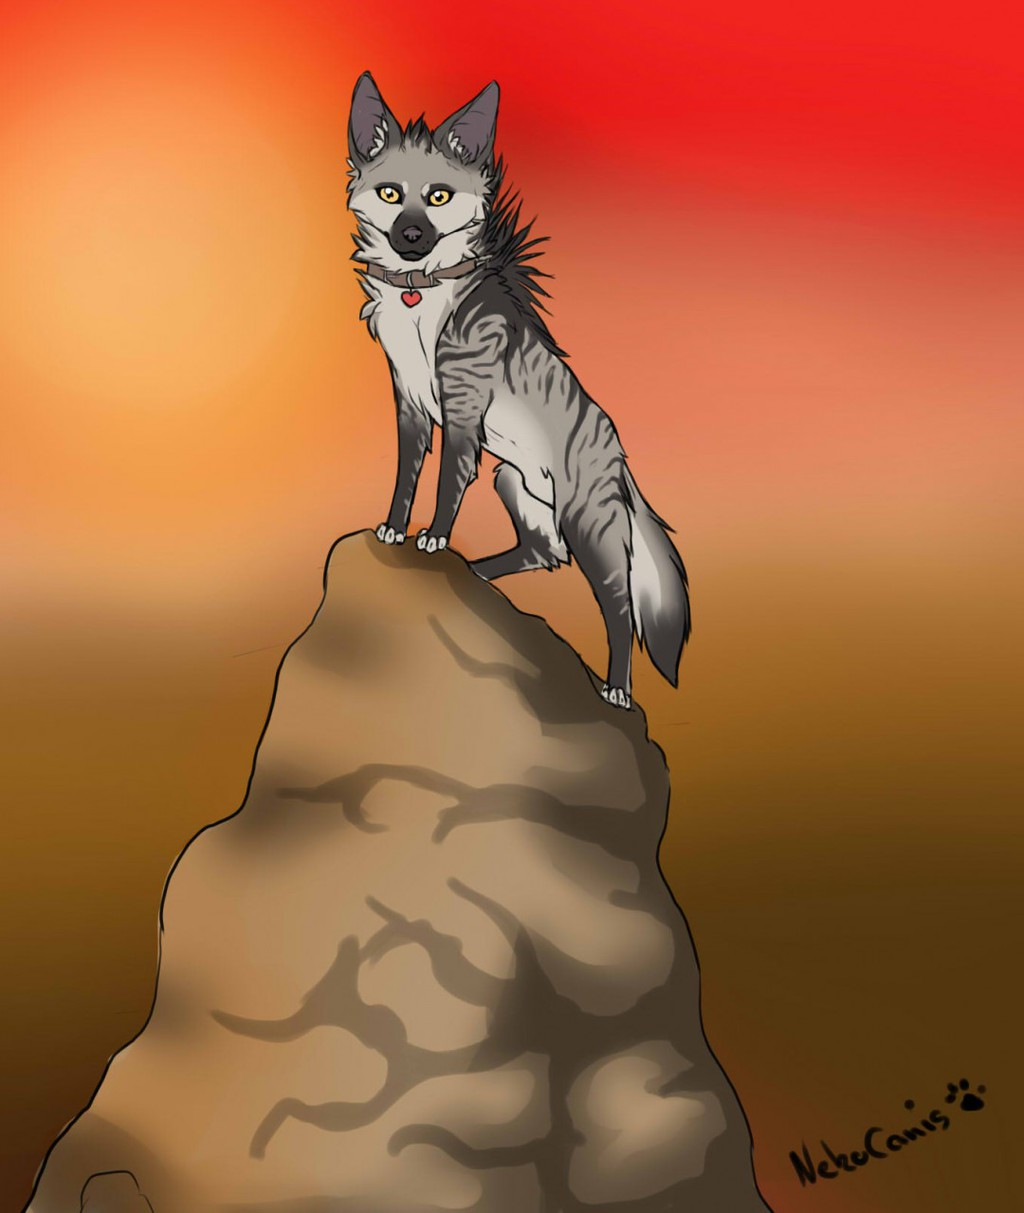 The aardwolf on a termite hill